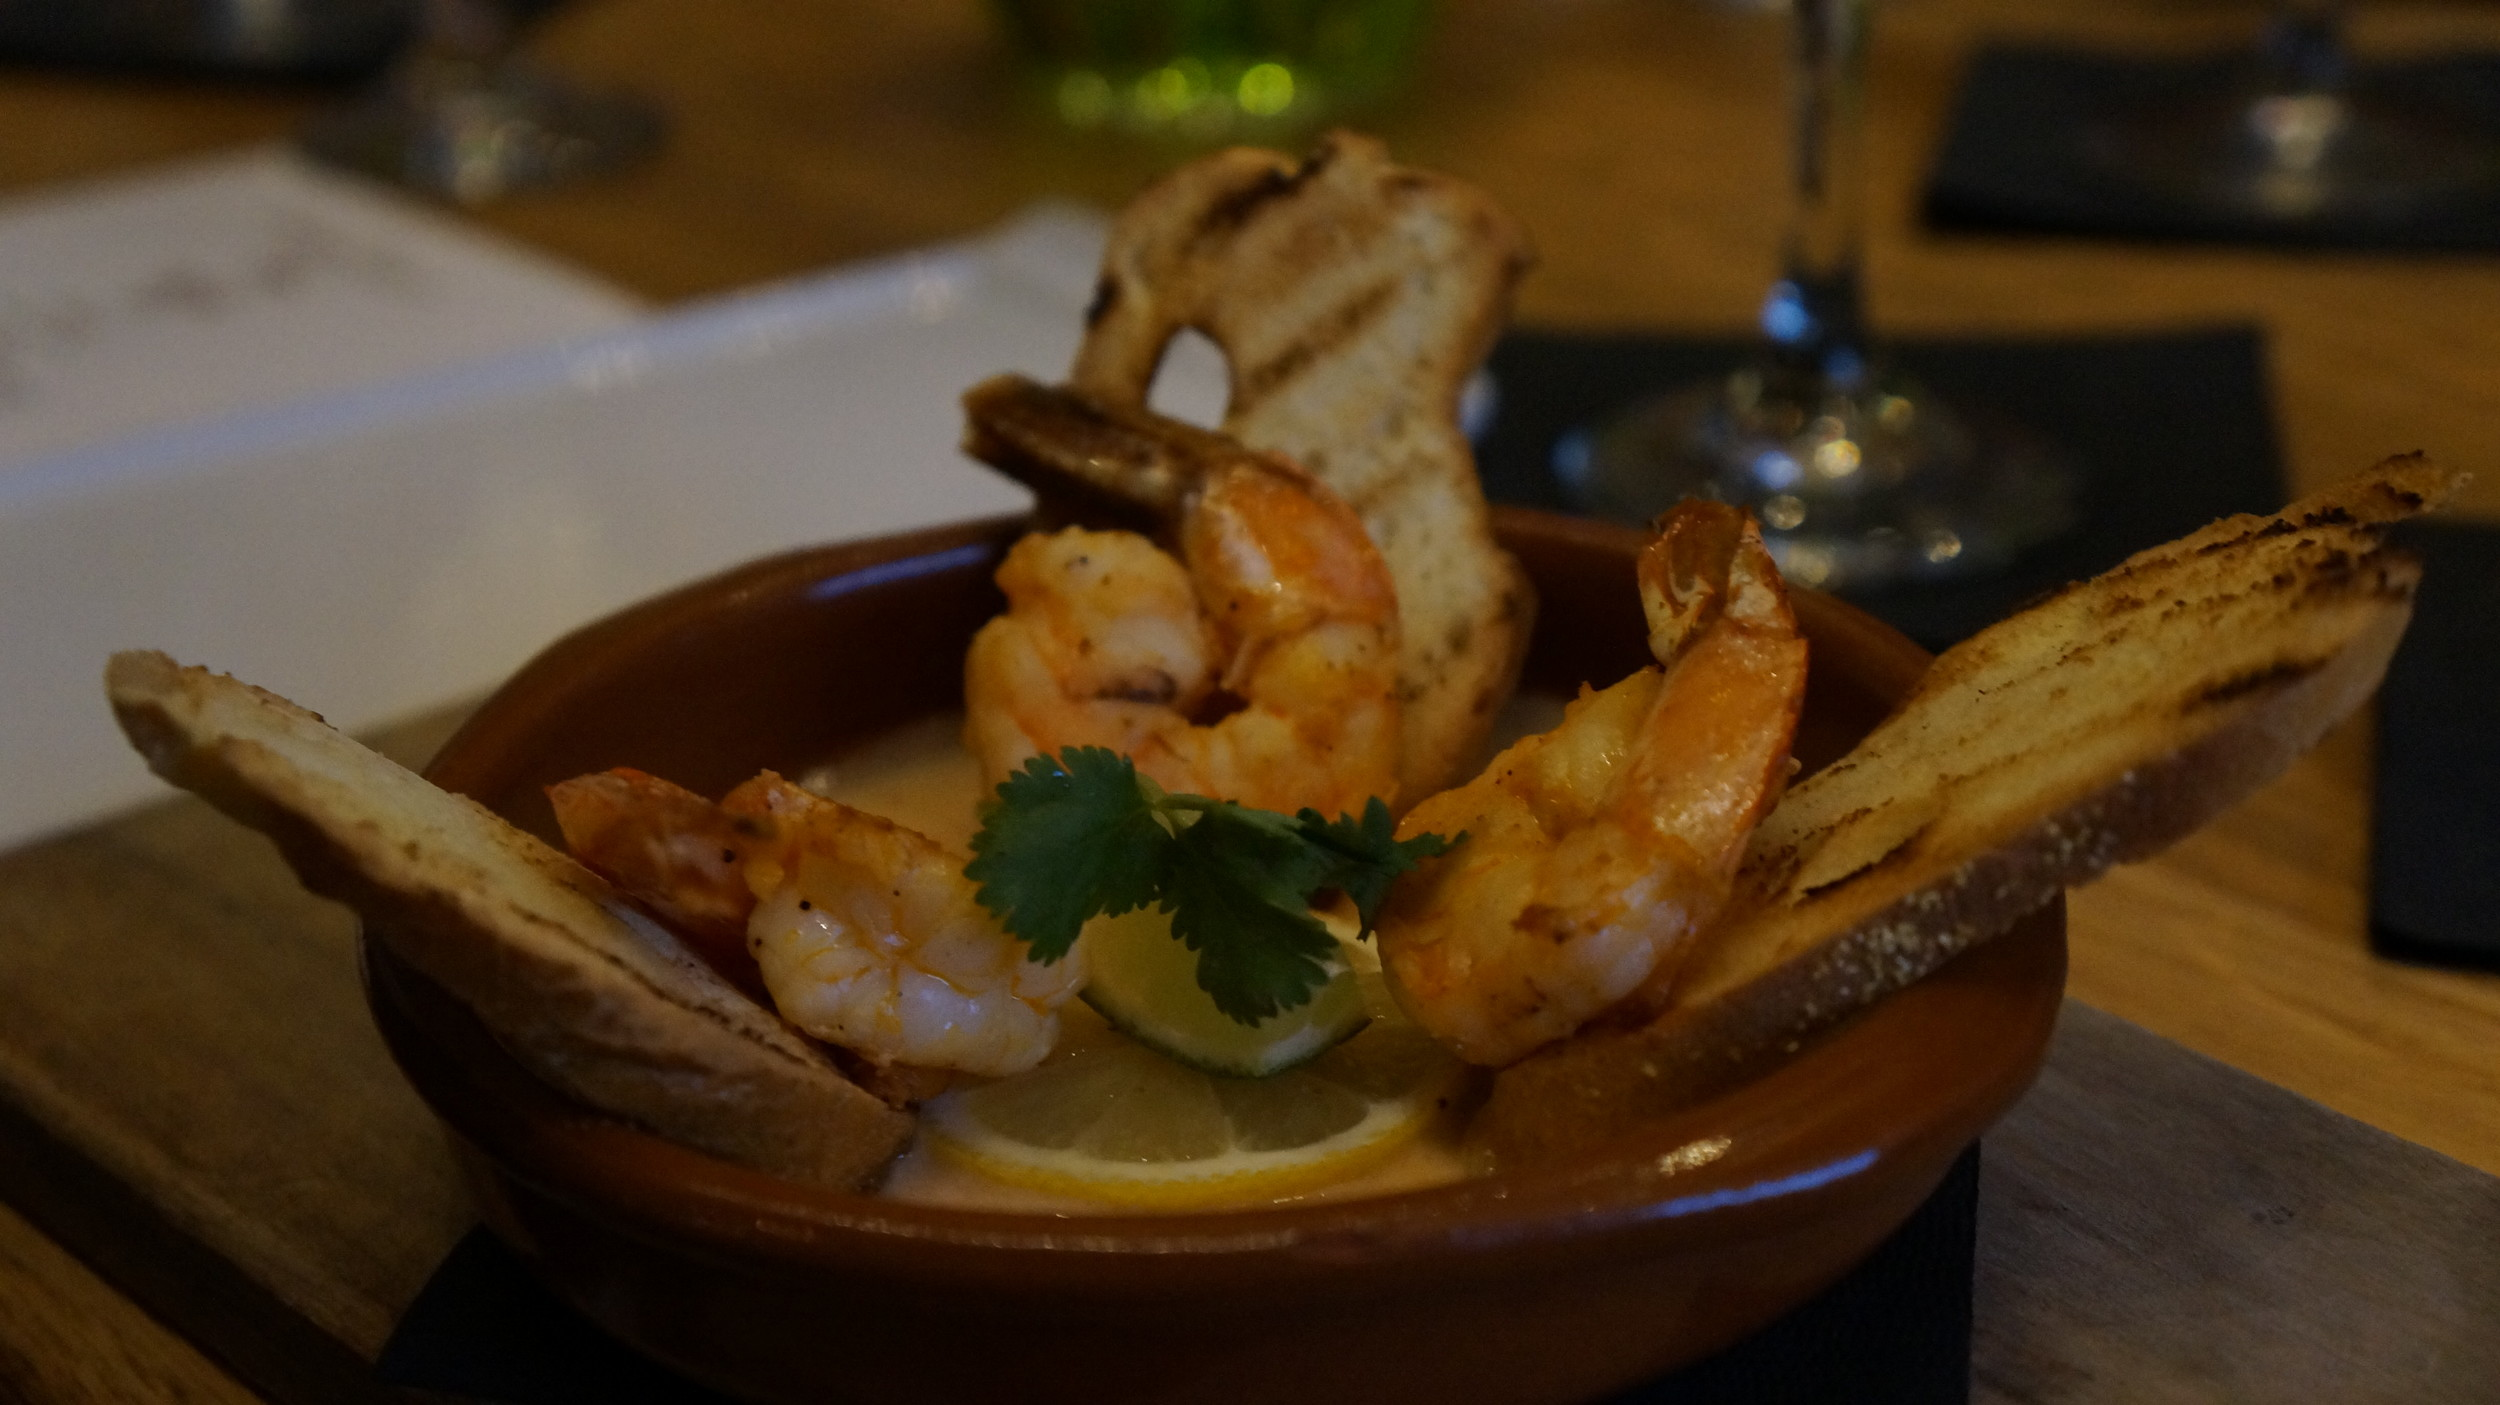 Shrimp a la Plancha :   La Plancha is a reference to a griddle or a grill that we use to cook the shrimp. This simple shrimp dish is elevated to new heights by using Kasa's house made coconut red curry sauce with lime and butter.